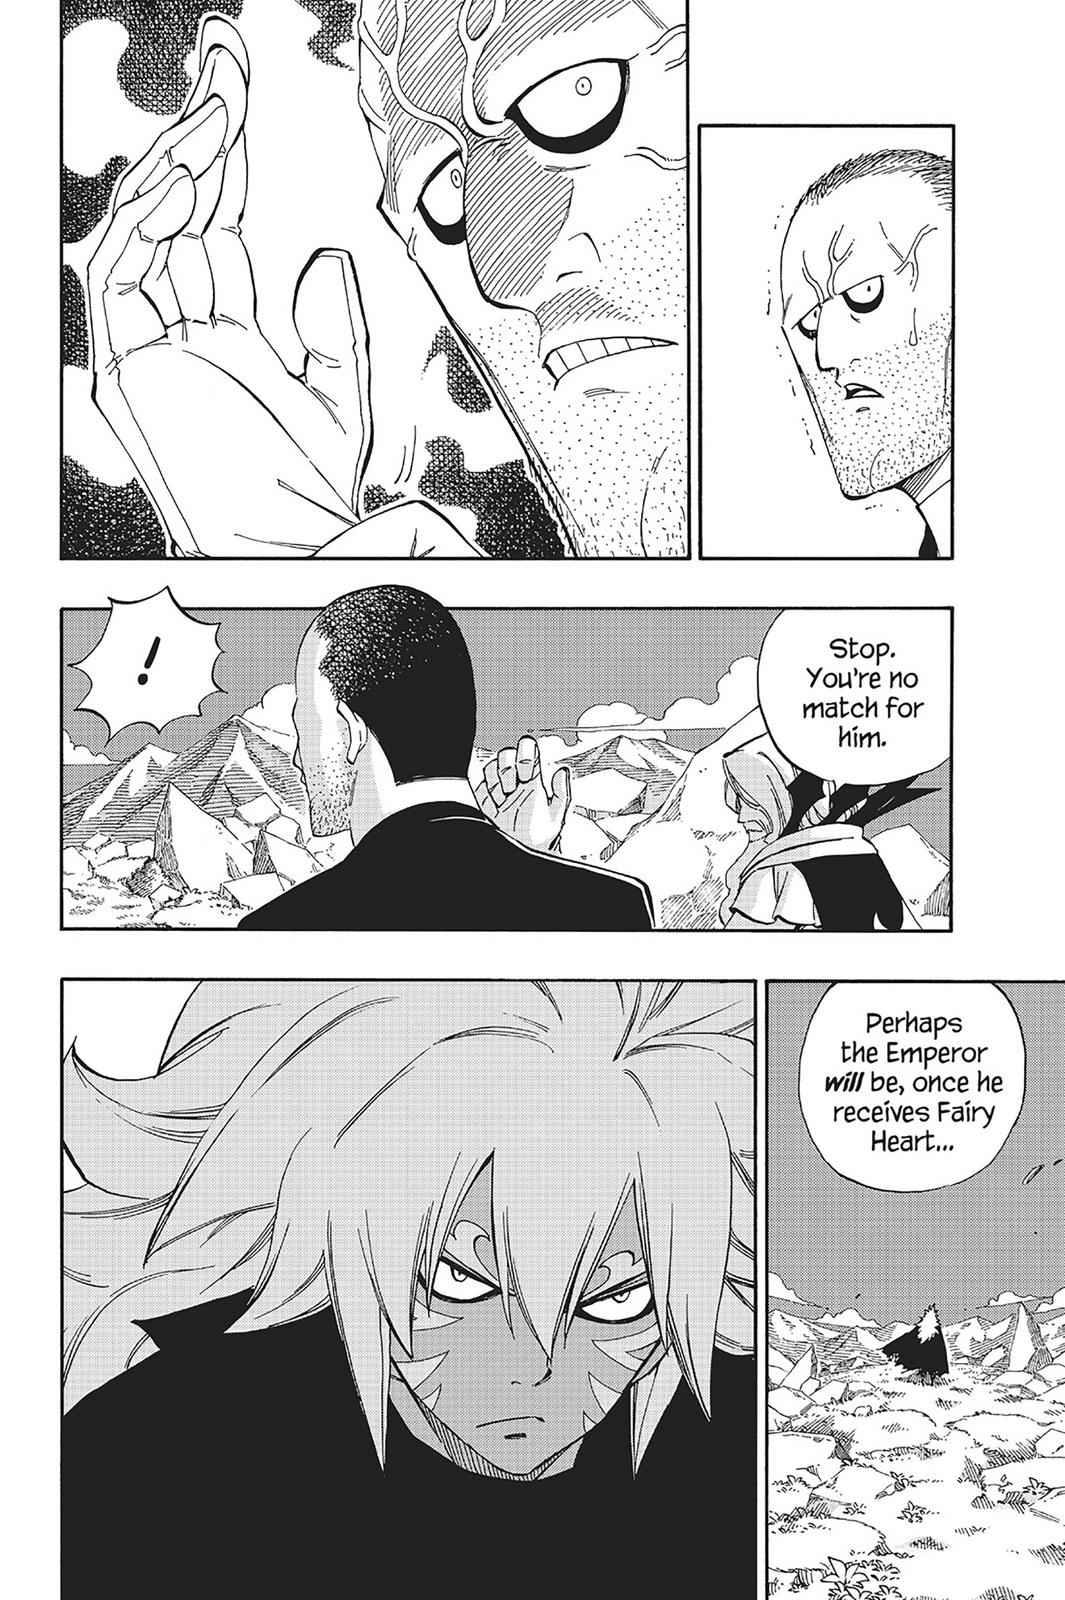 Fairy Tail Chapter 471 Page 4